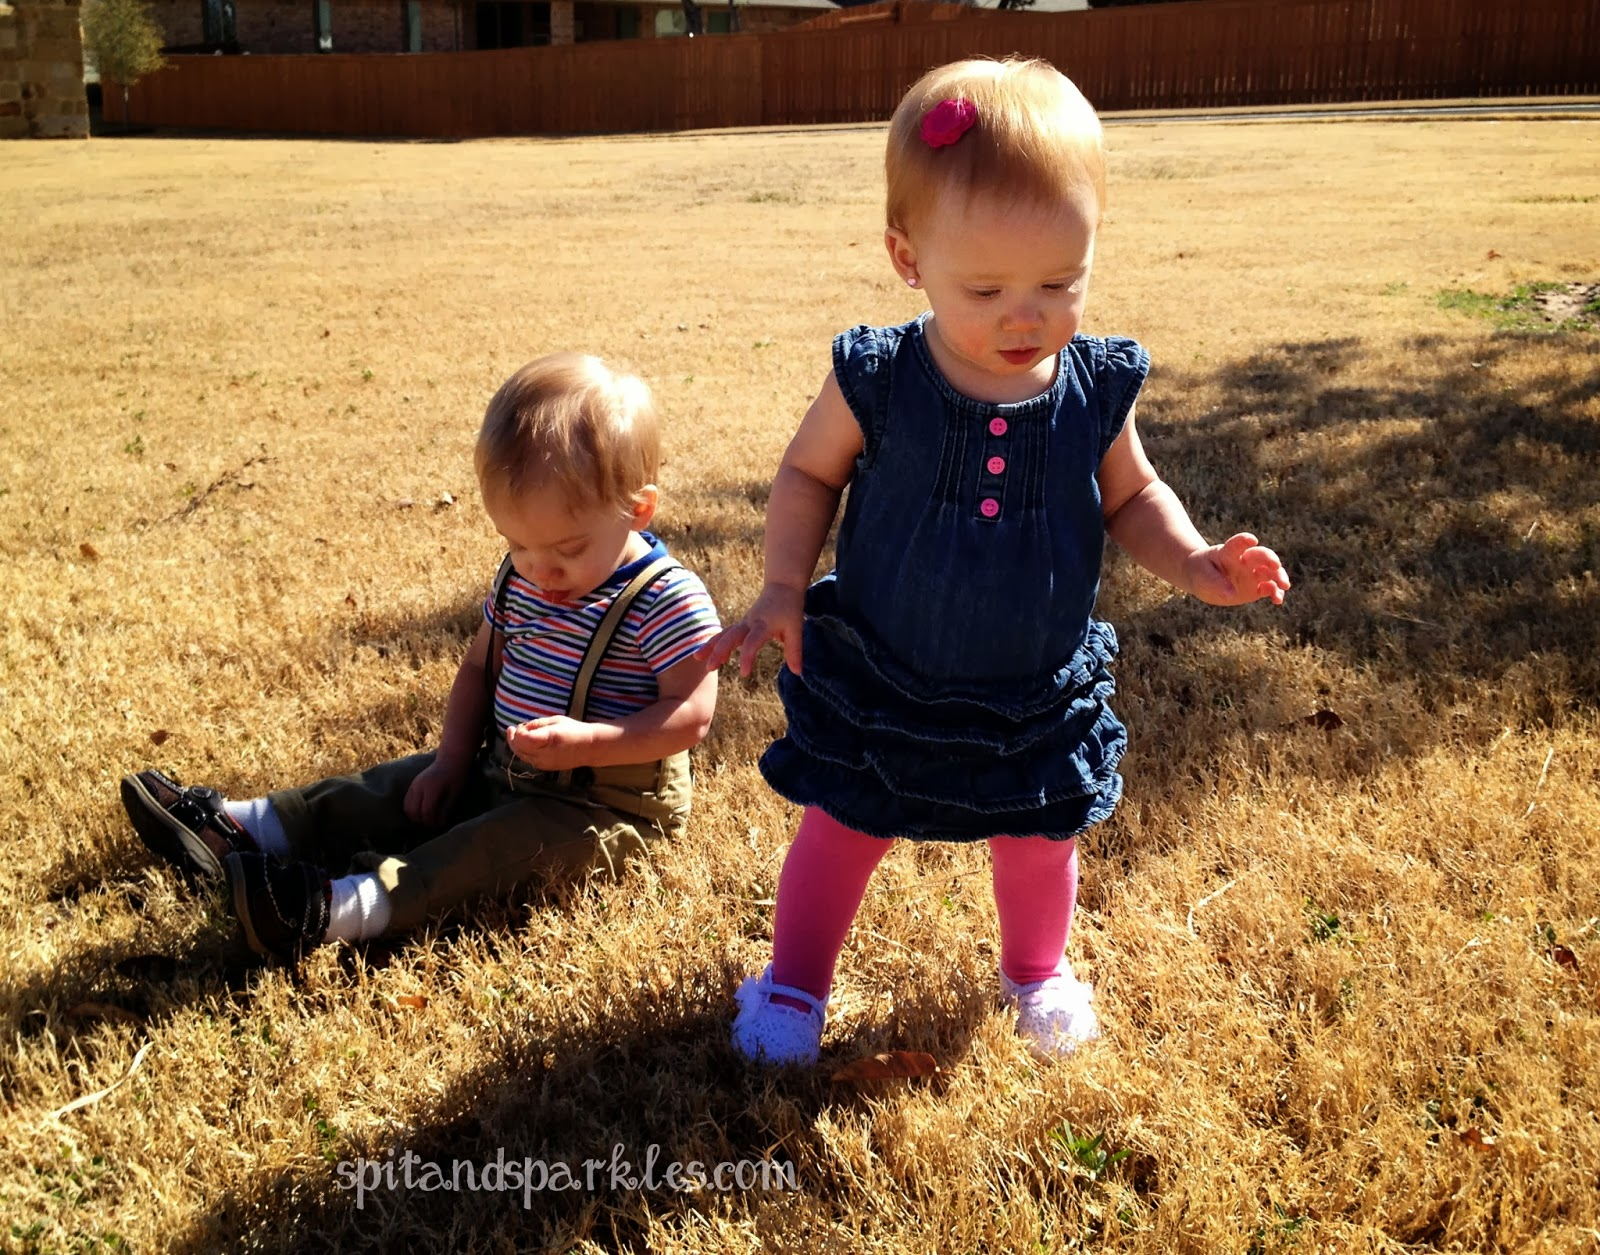 15 month old twins #miraclebabies